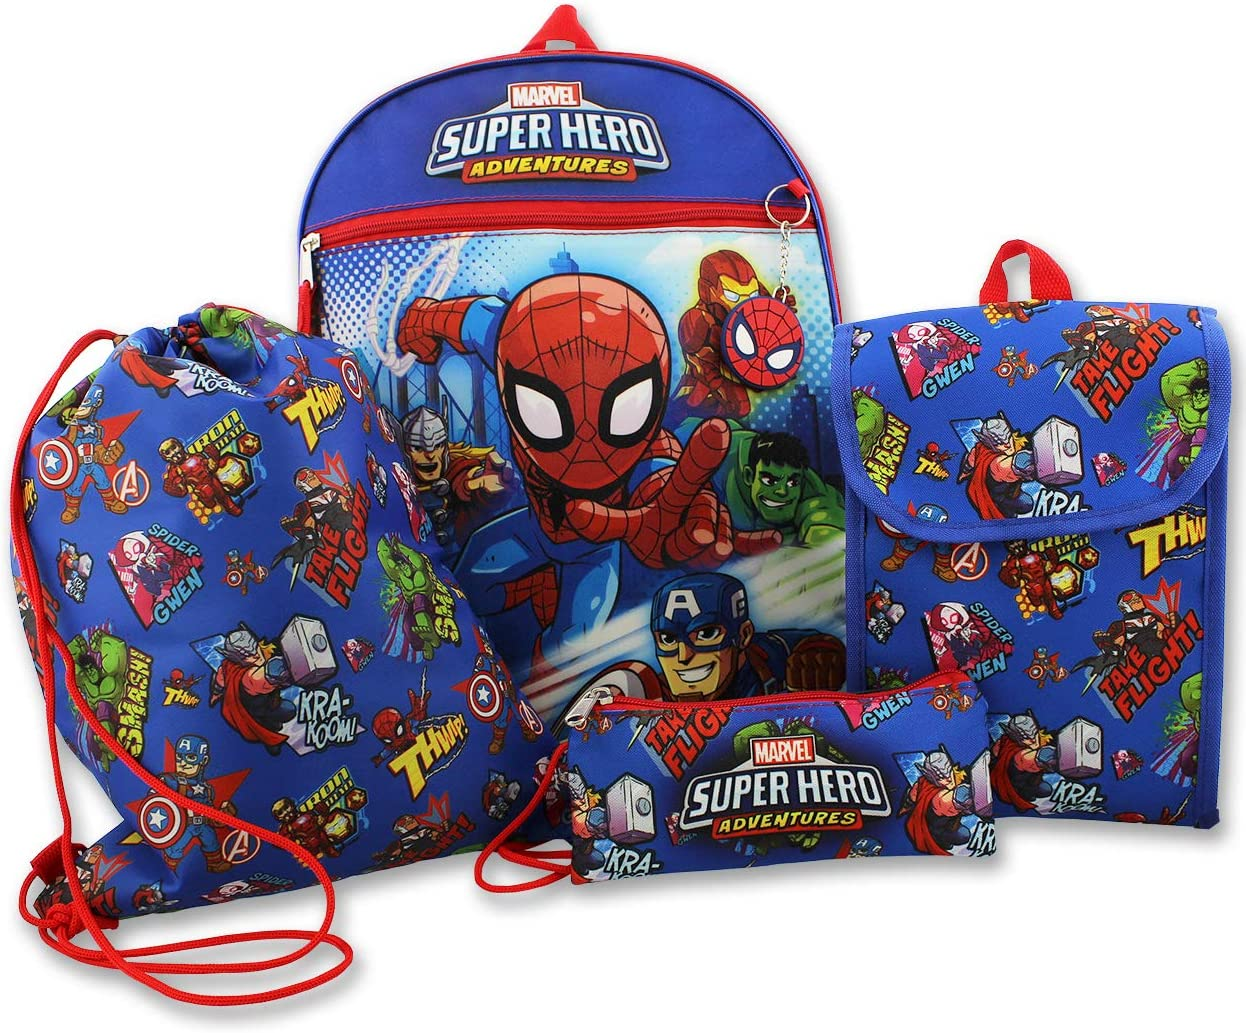 Super Hero Adventures Boys 5 piece Backpack and Snack Bag School Set (One Size, Blue/Red)